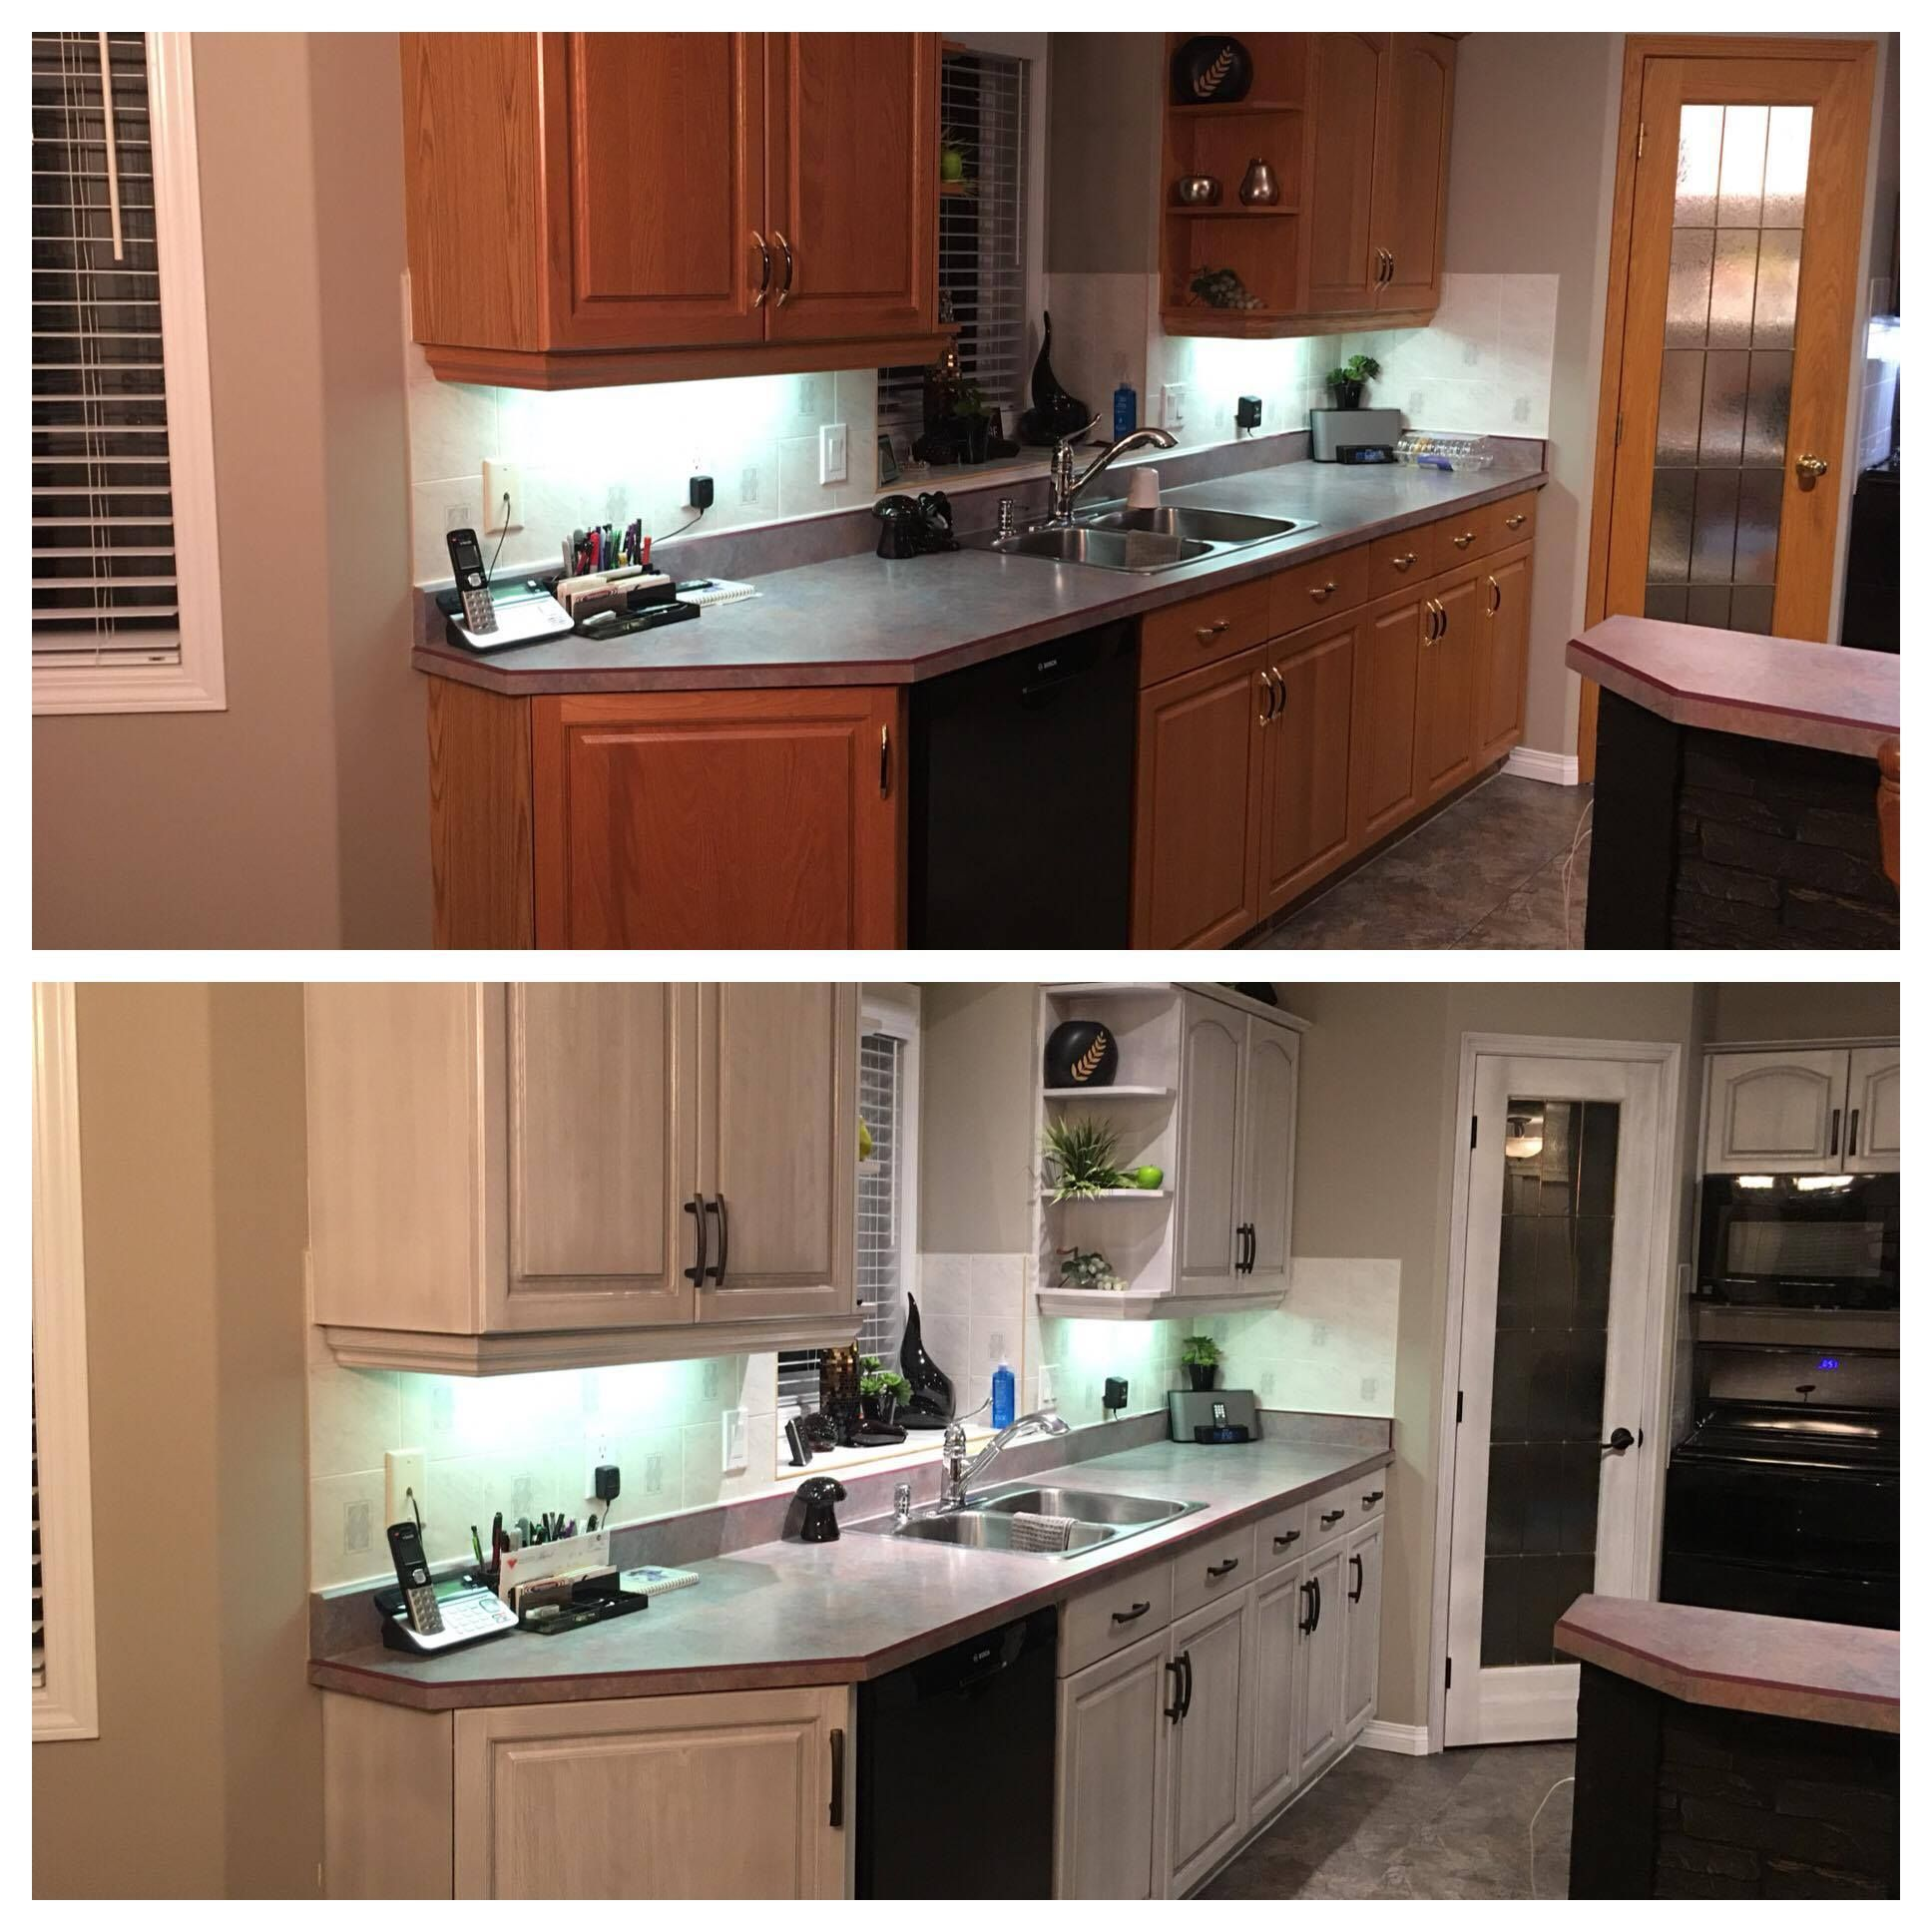 Is It Time To Renovate Your Kitchen Cabinet Doors No Problem Spray Painting Service On Old Or New Kitchen Refacing Kitchen Cabinets Kitchen Cabinet Doors